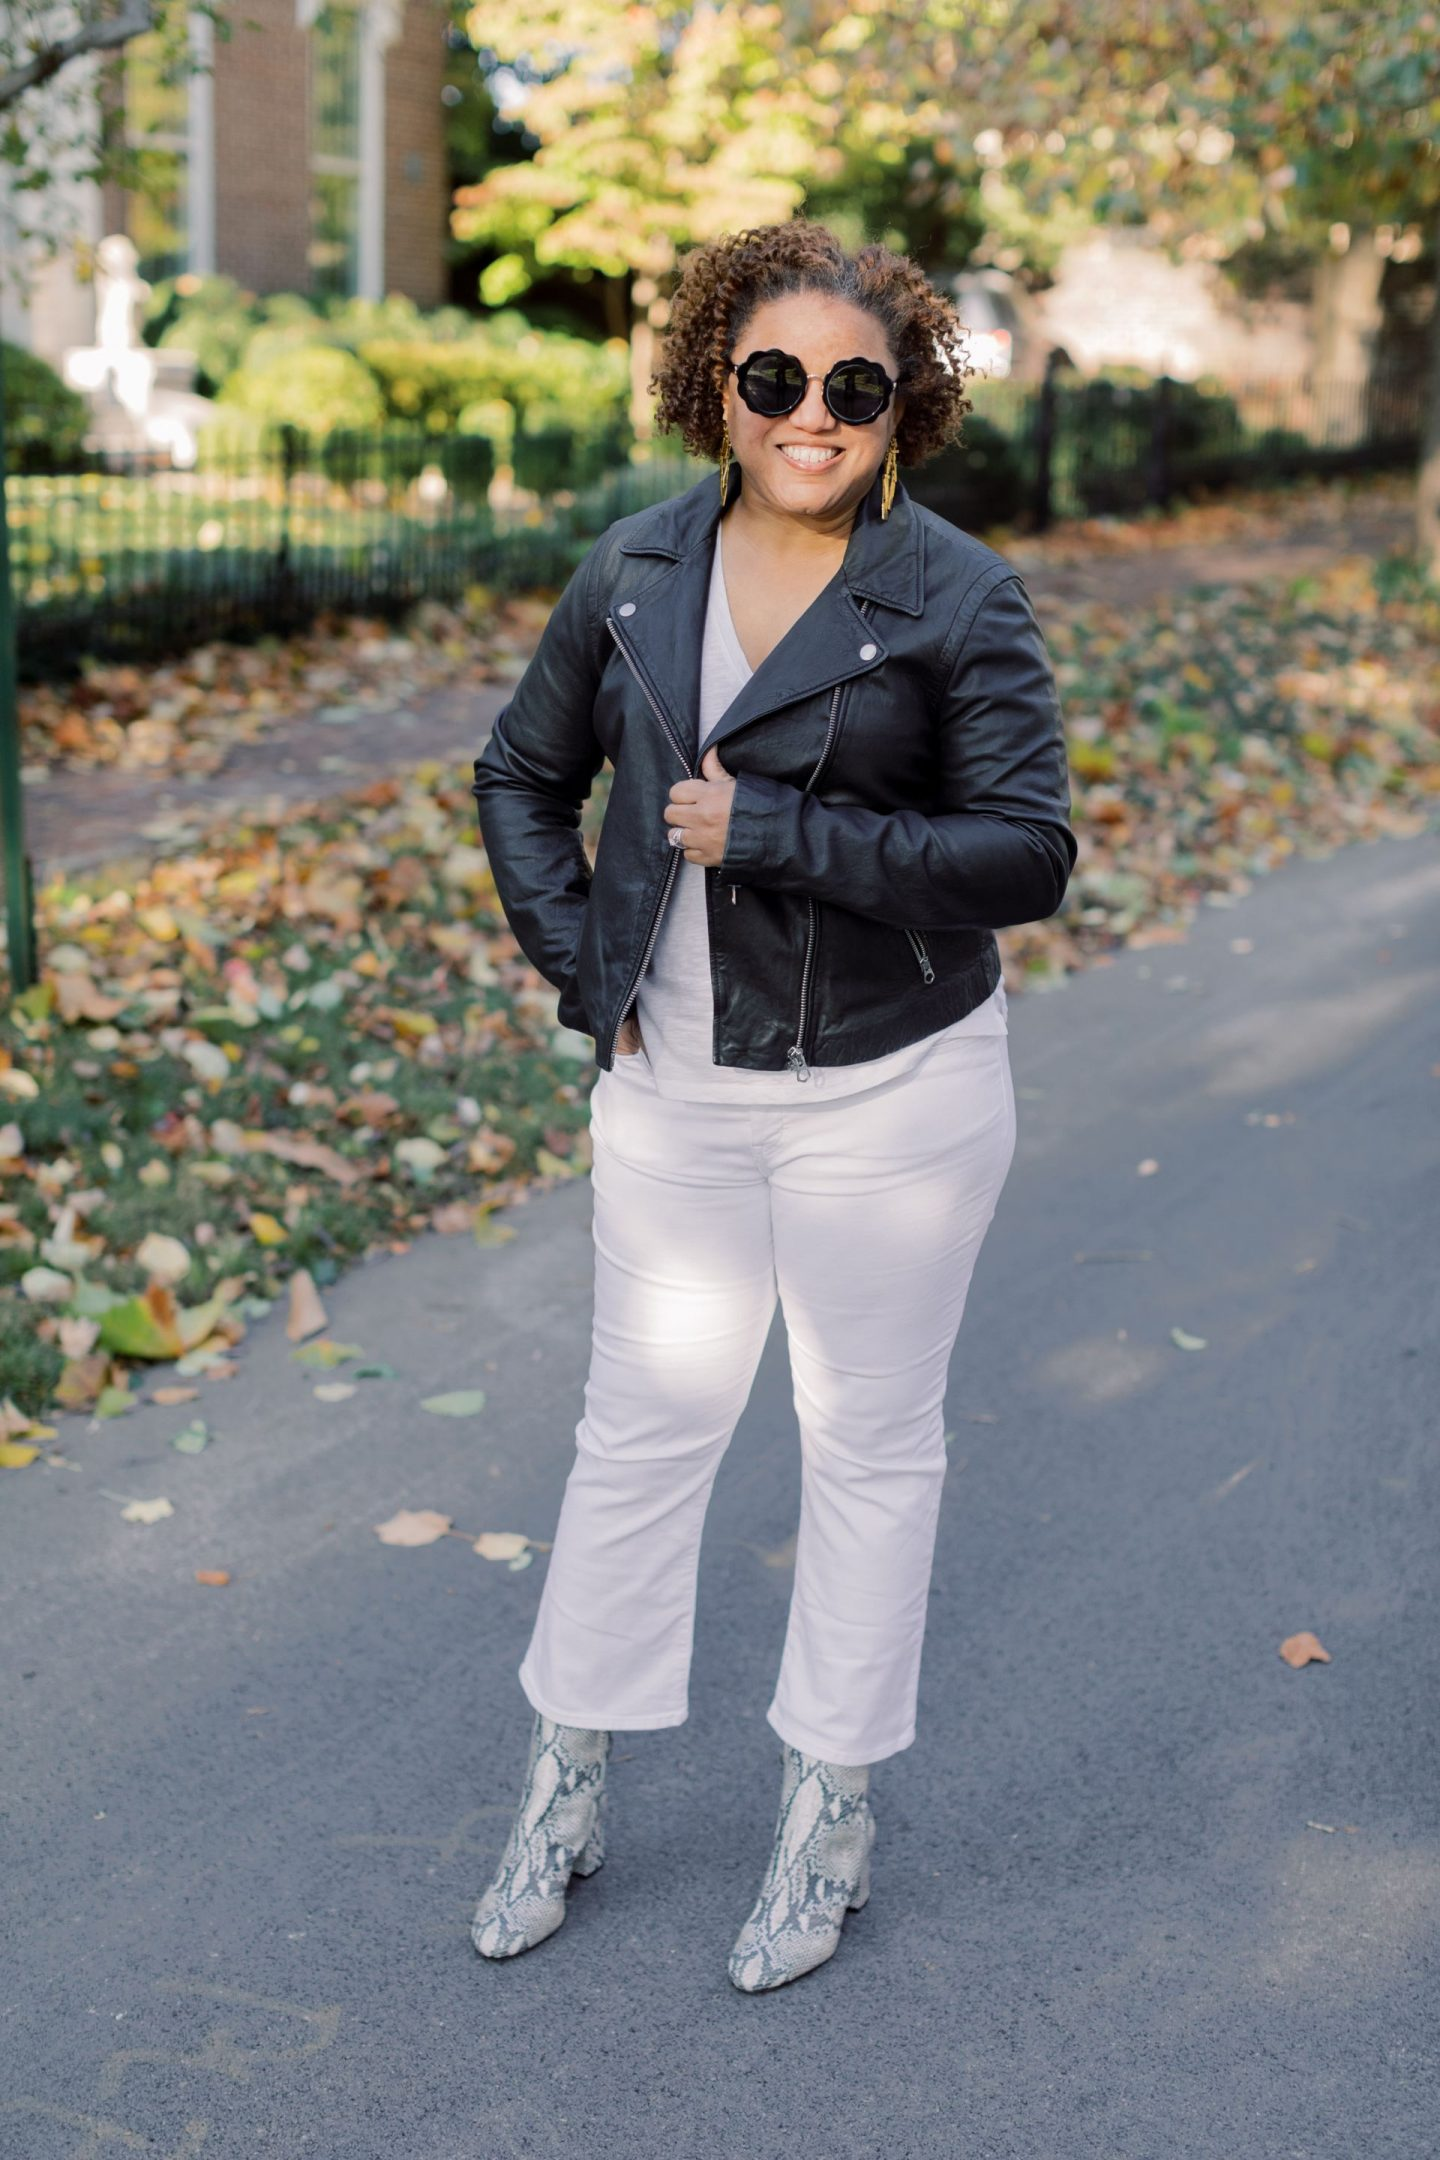 Wearing White After Labor Day by popular Kentucky fashion blog, Really Rynetta: image of a woman wearing a pair of Madewell Cali Demi-Boot Jeans in Pure White, black leather jacket, black round frame sunglasses, white t-shirt, and snake skin ankle boots.